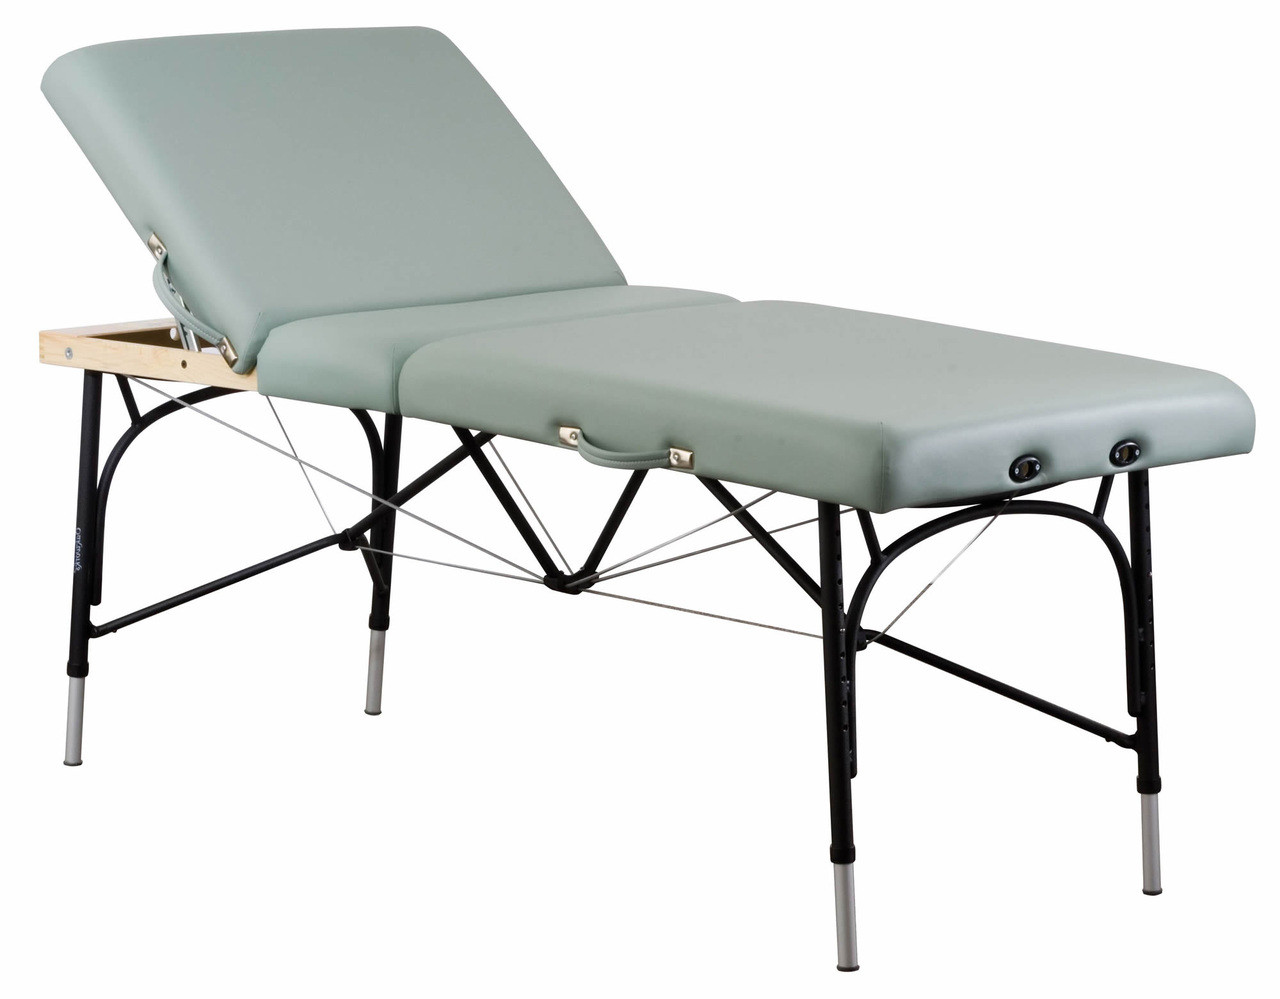 Oakworks Alliance Aluminum Massage Table